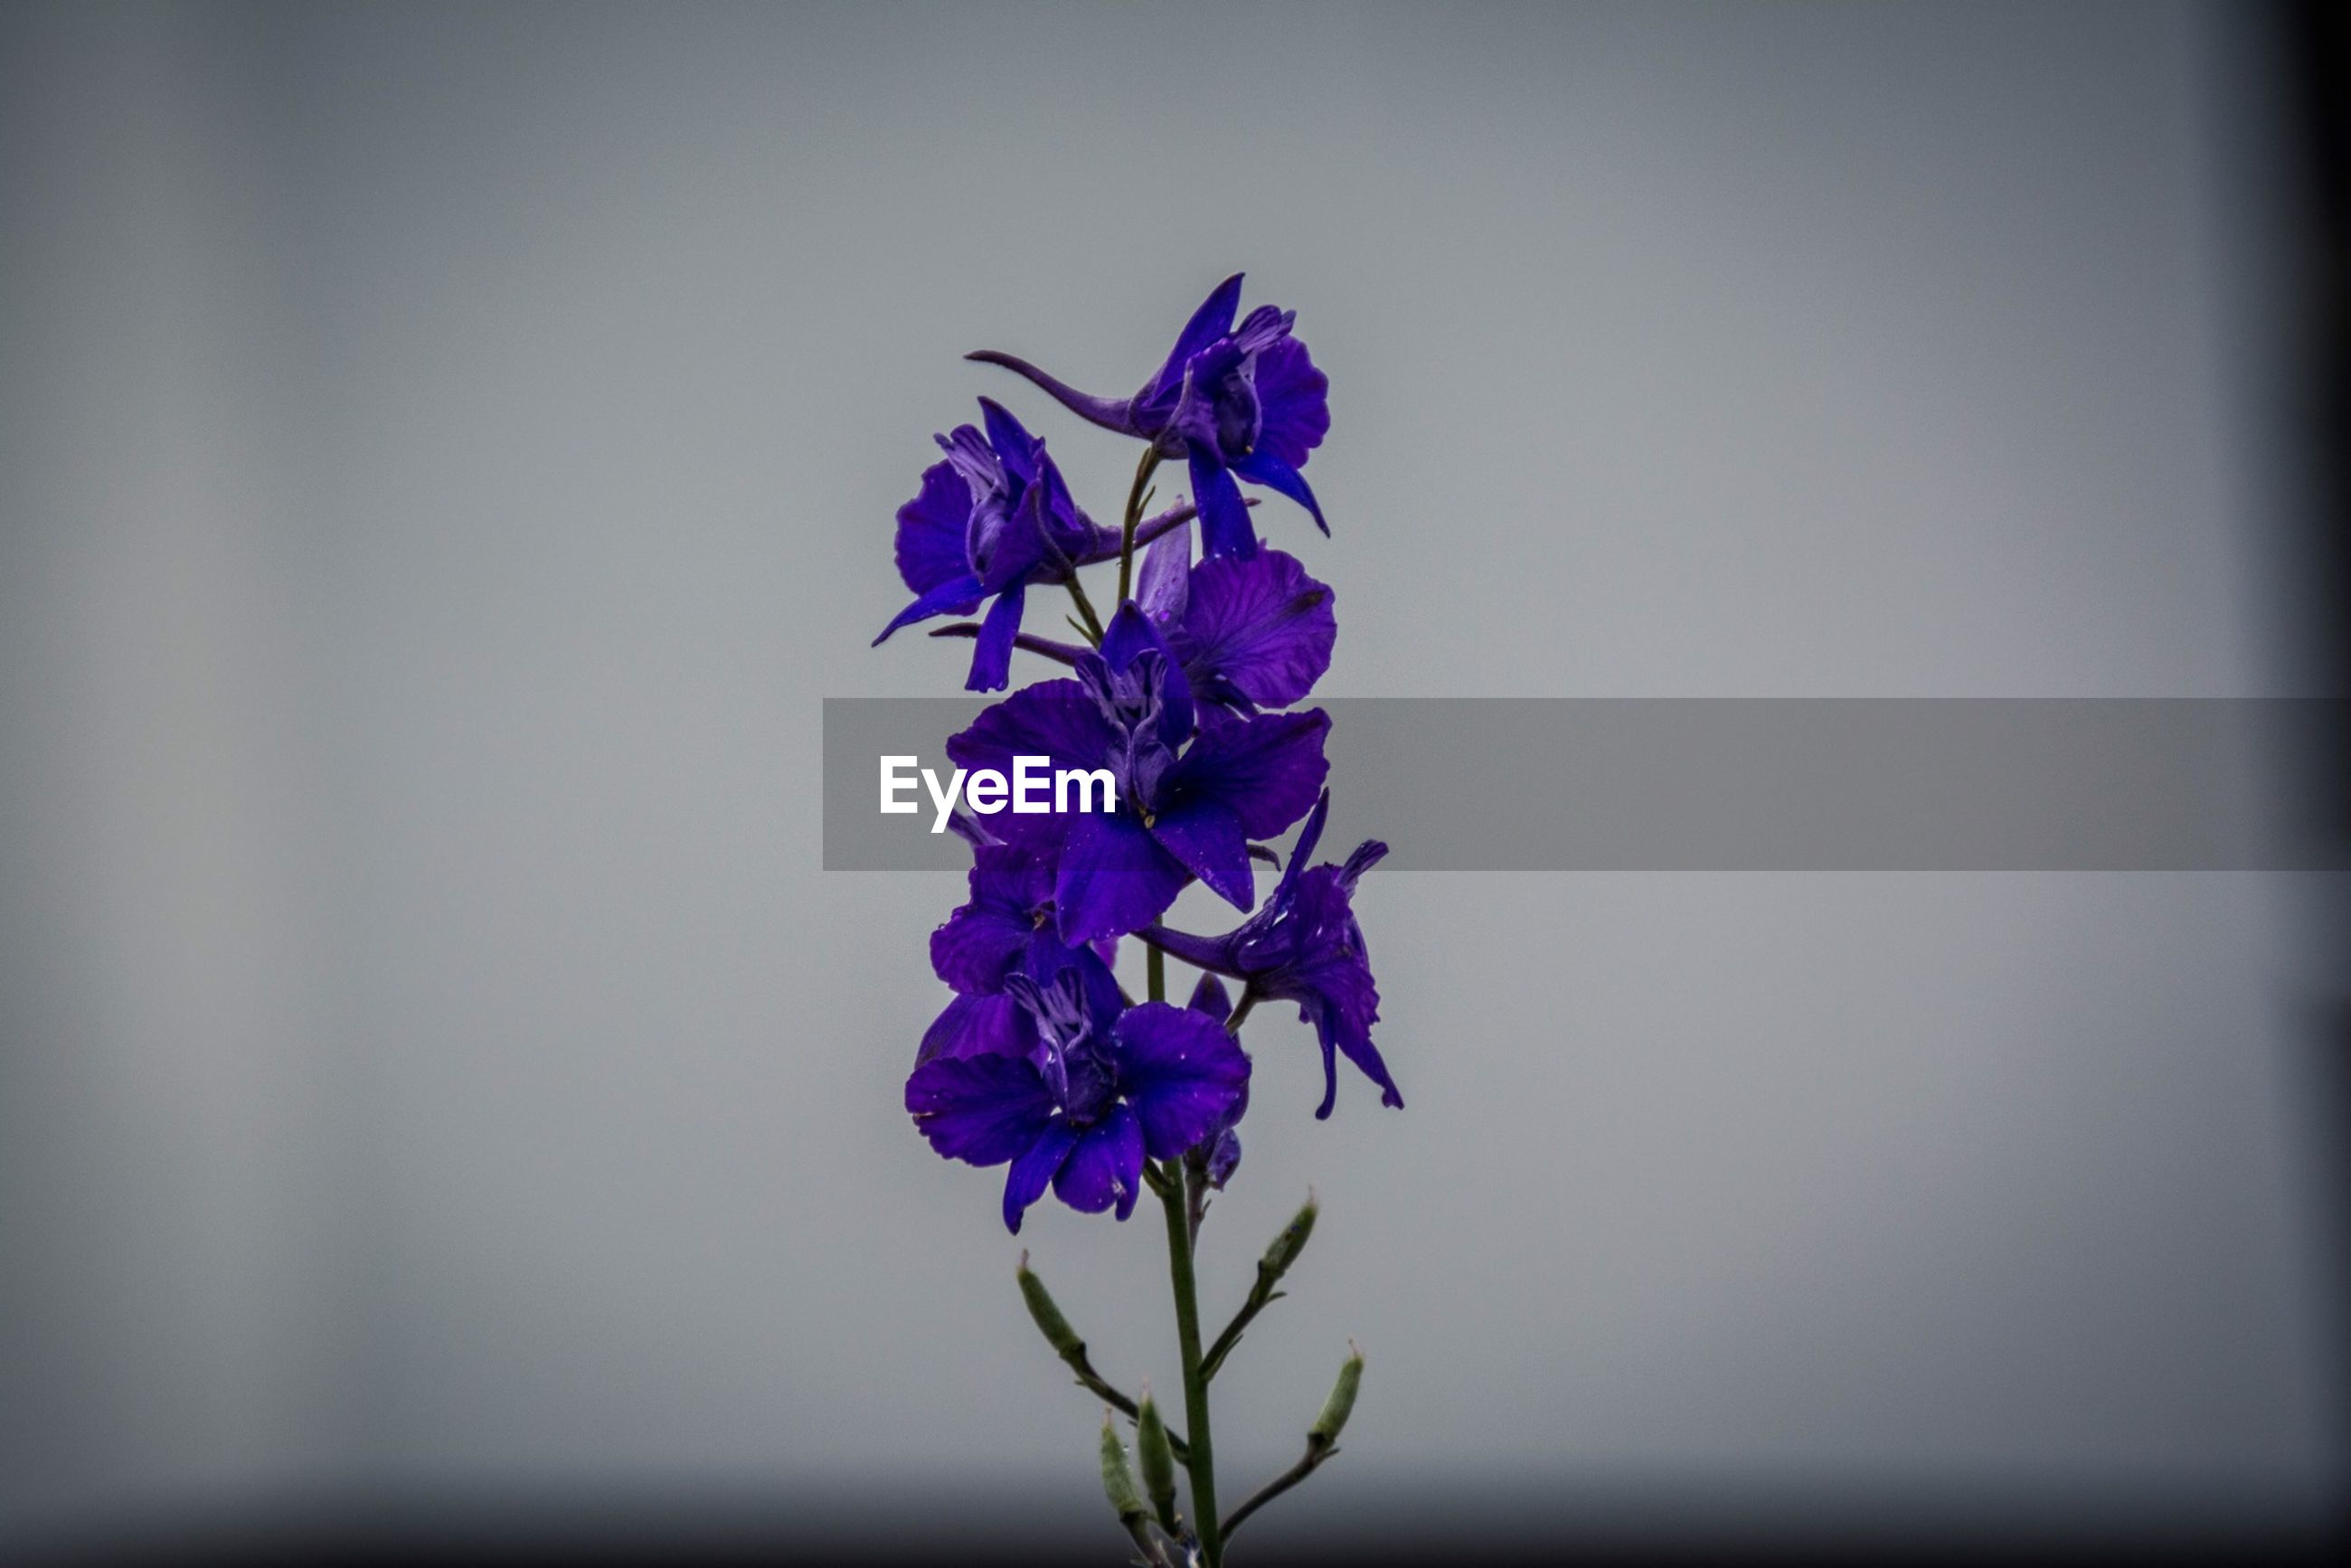 flower, freshness, fragility, purple, growth, petal, beauty in nature, plant, nature, close-up, stem, flower head, copy space, blooming, focus on foreground, in bloom, blue, clear sky, blossom, selective focus